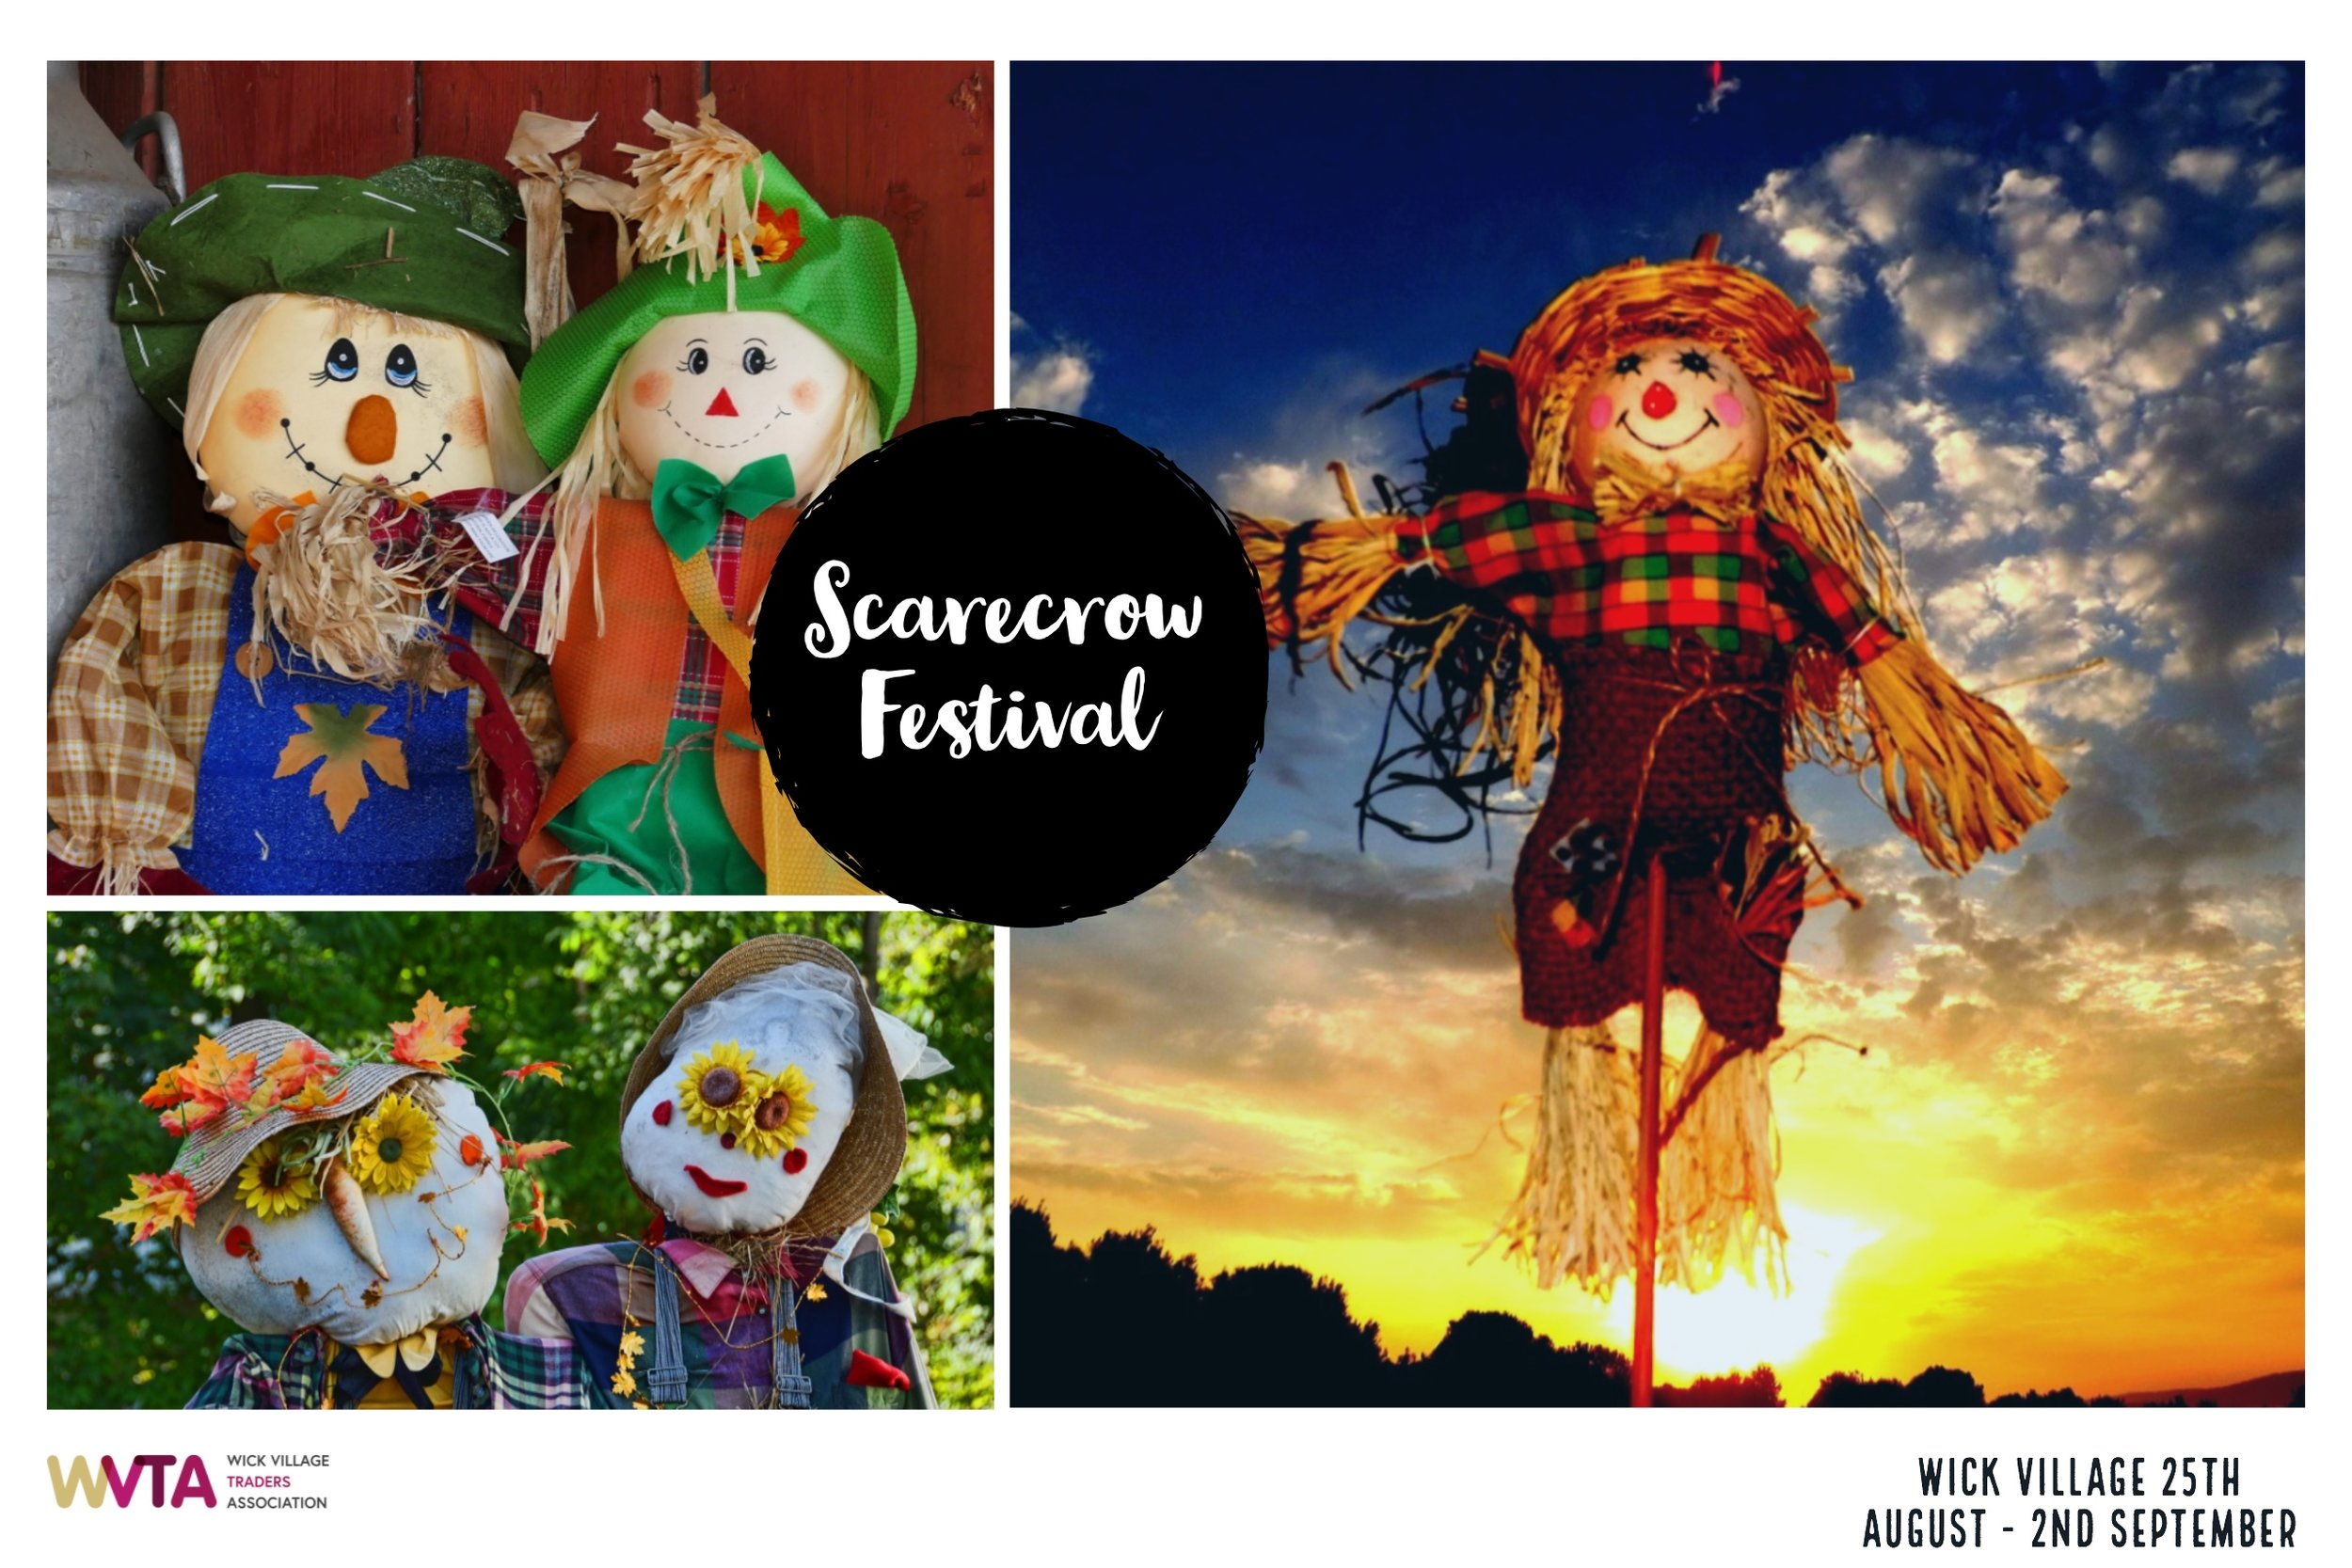 The Wick Village Scarecrow Festival from the 25th August - 2nd September 2018 in Littlehampton, West Sussex.